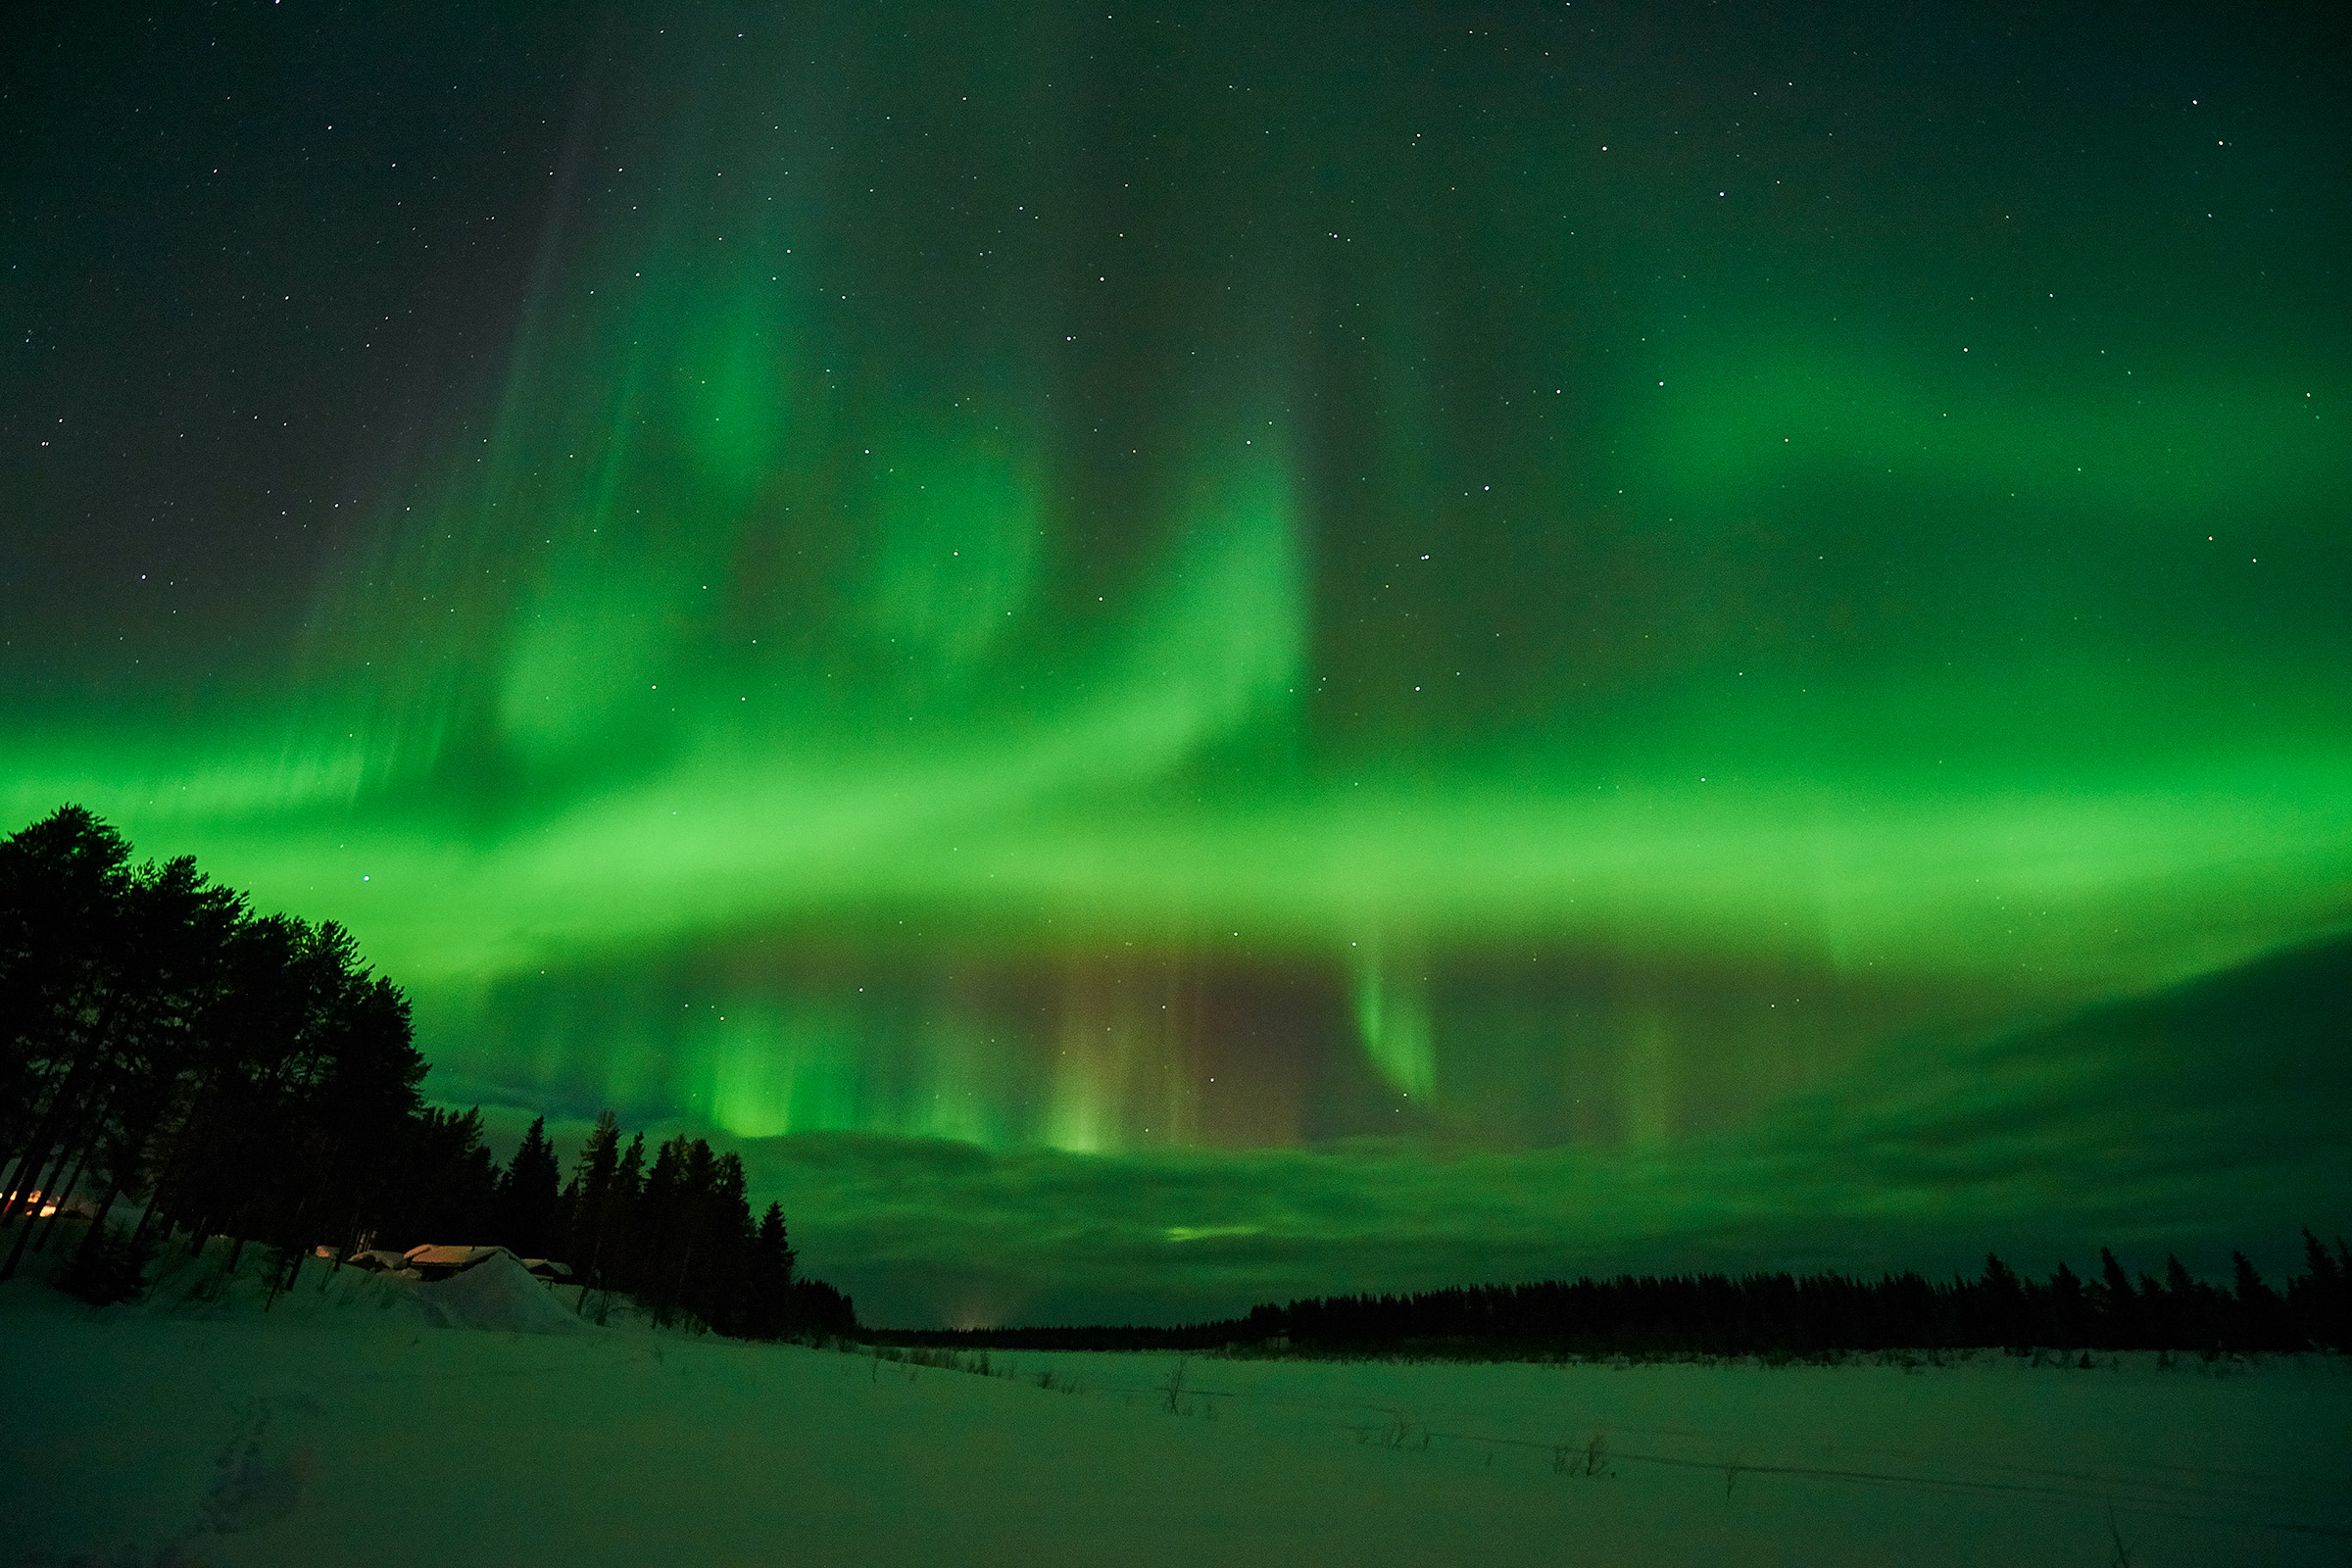 Northern lights Lapland - Aurora borealis